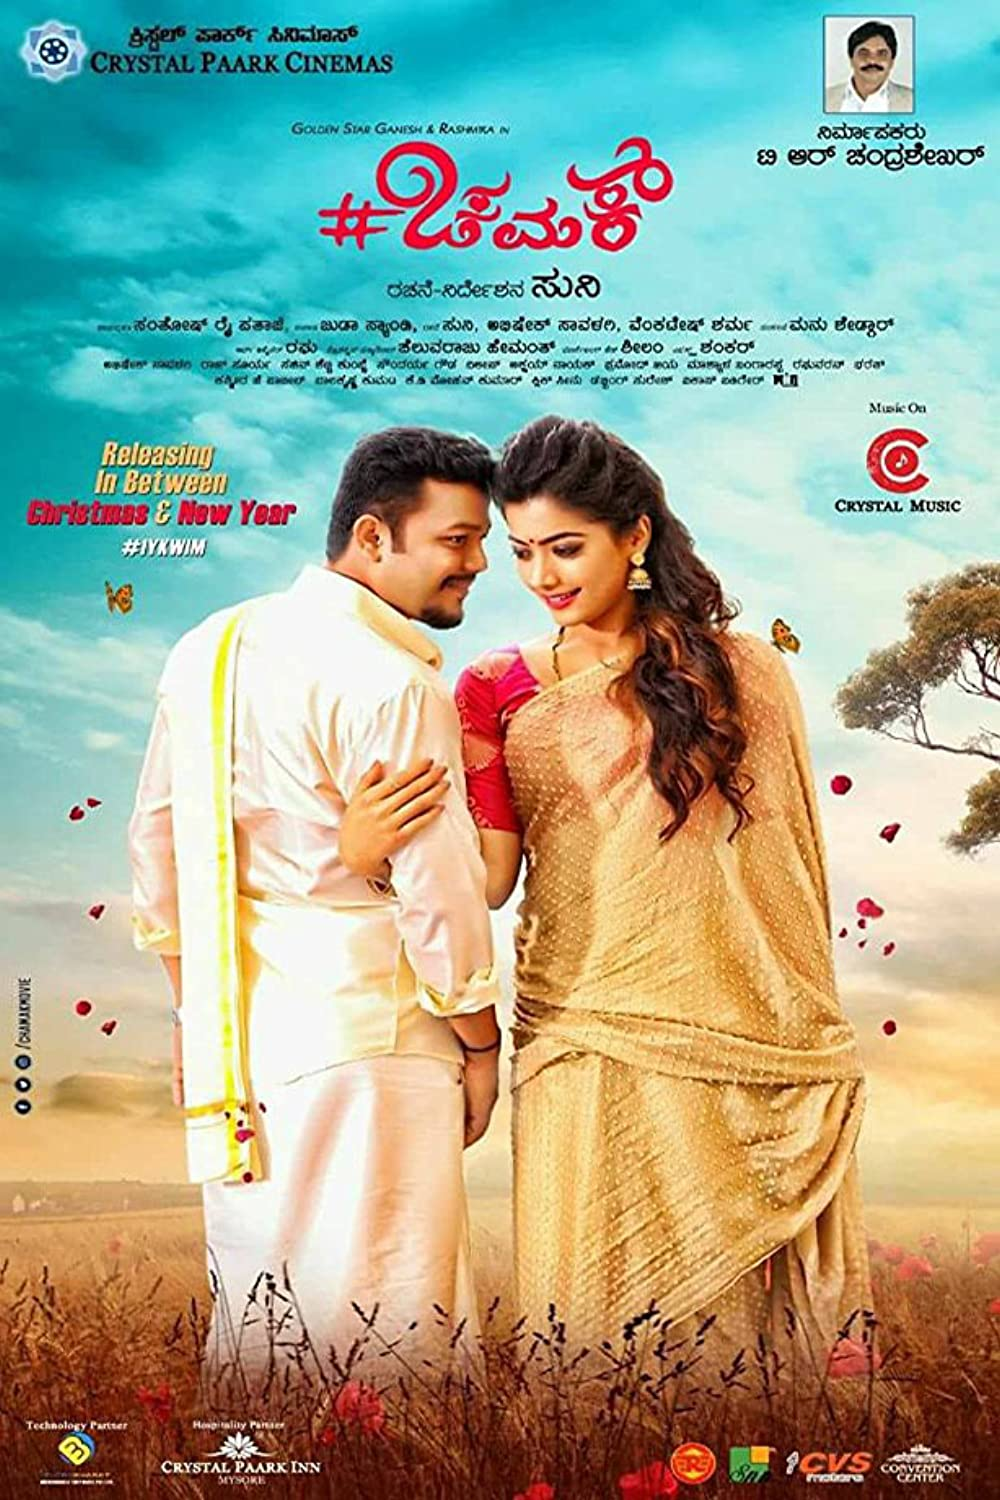 50 Days of Love (Chamak) 2021 South Indian Hindi Dubbed Movie HDRip UNCUT